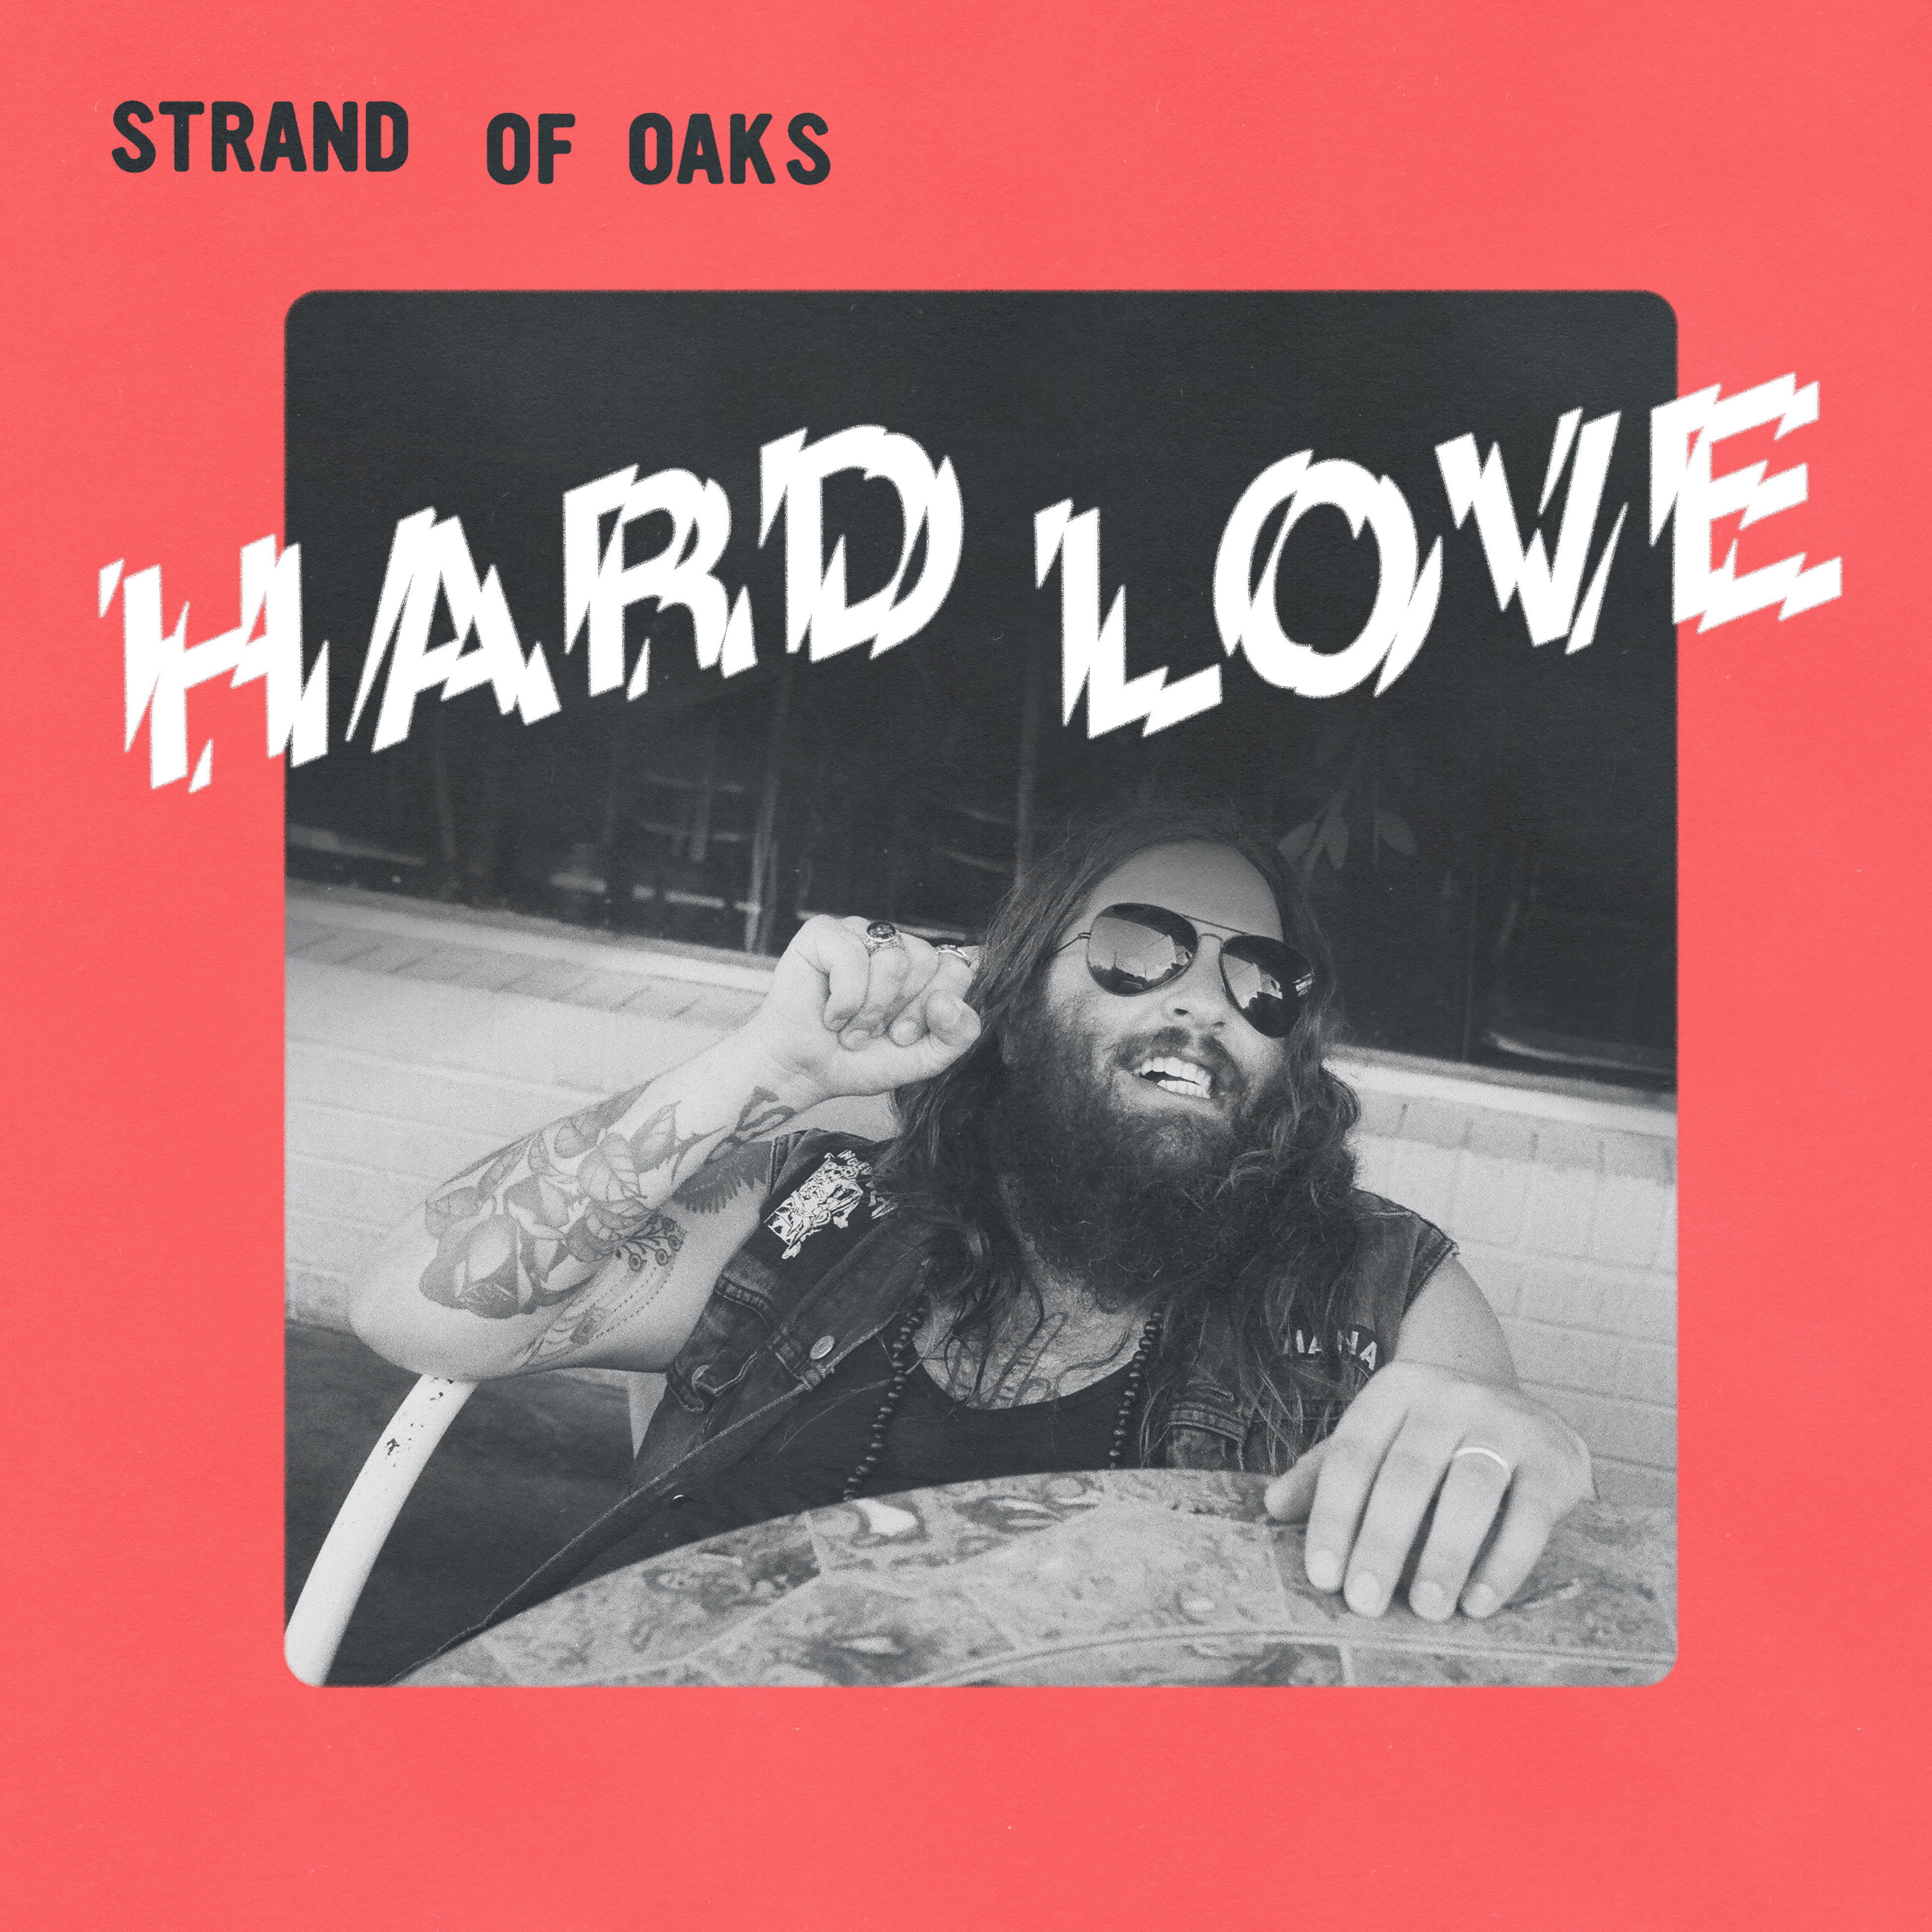 Strand of Oaks announces new LP and single.